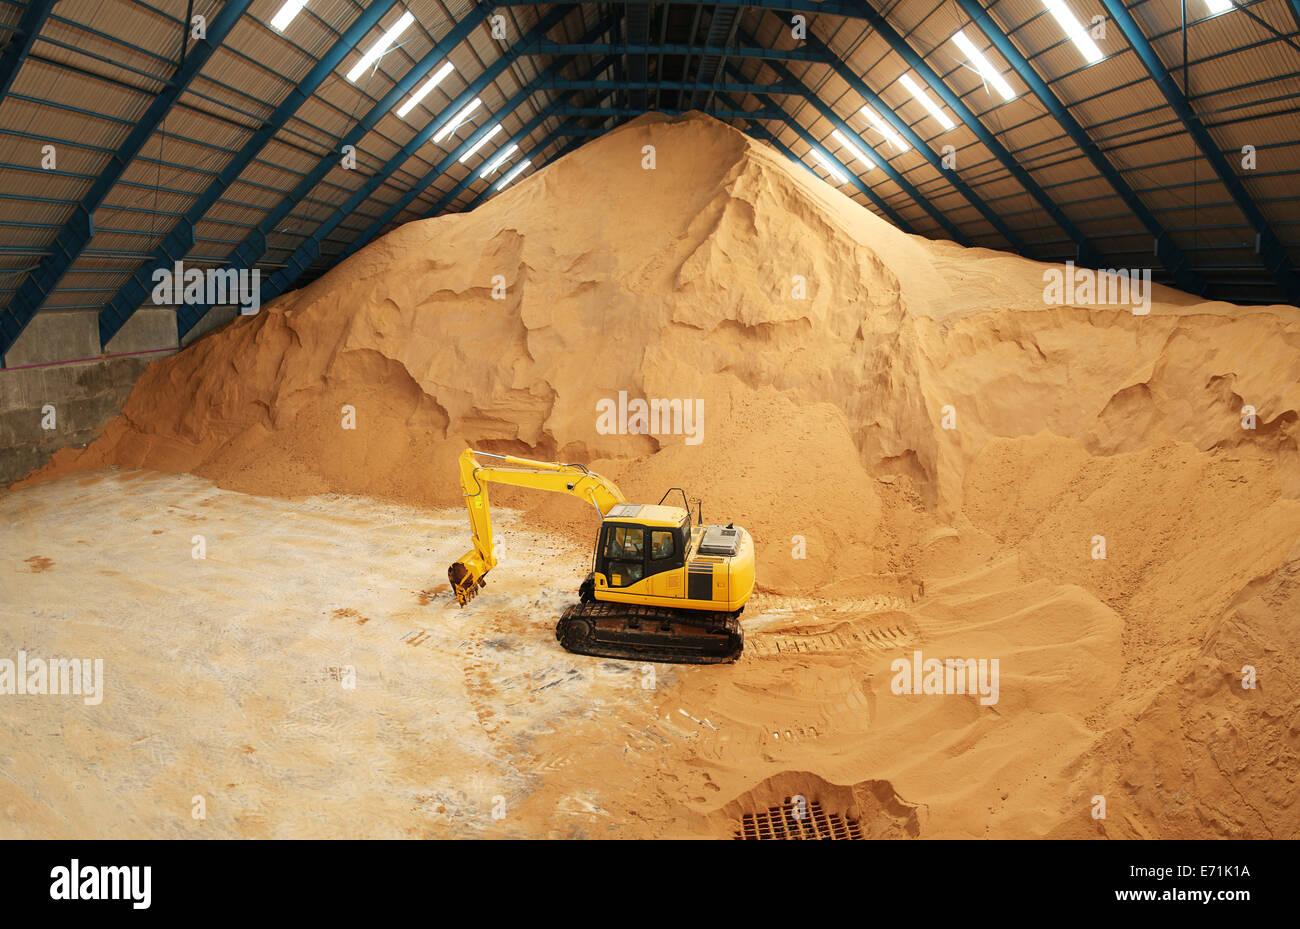 Ordinaire Excavator In A Raw Sugar Factory Storage Building